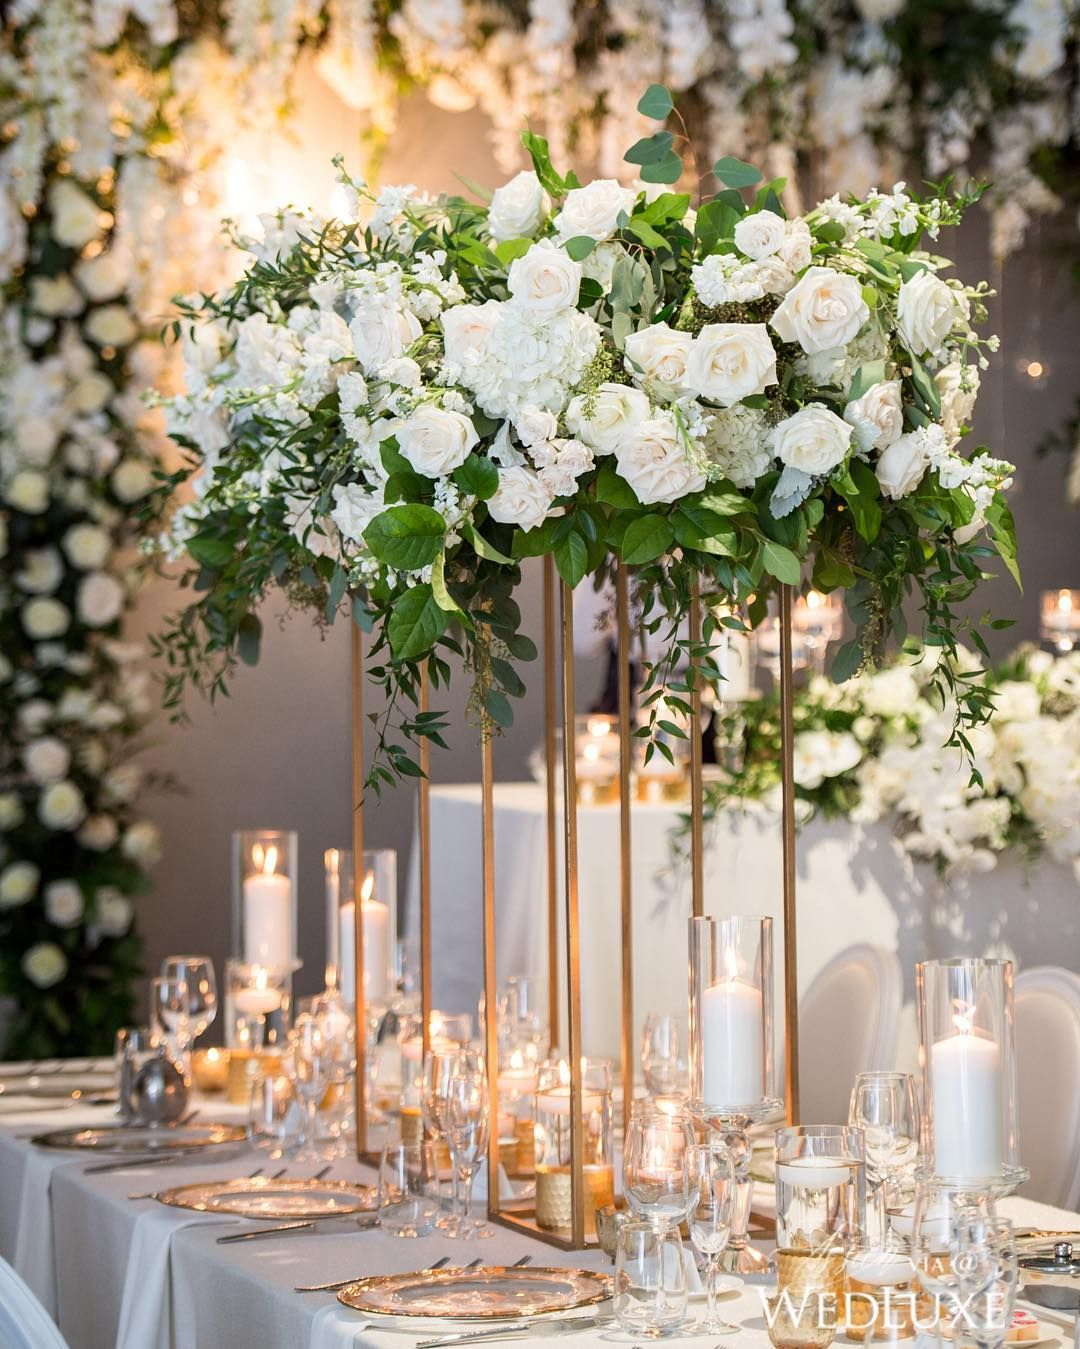 White florals, metallic gold accents, and flickering candles make up this breathtaking #tablescape | Photography By: Amsis Photography | WedLuxe Magazine | #WedLuxe #Wedding #luxury #weddinginspiration #luxurywedding #tabledecor #floral